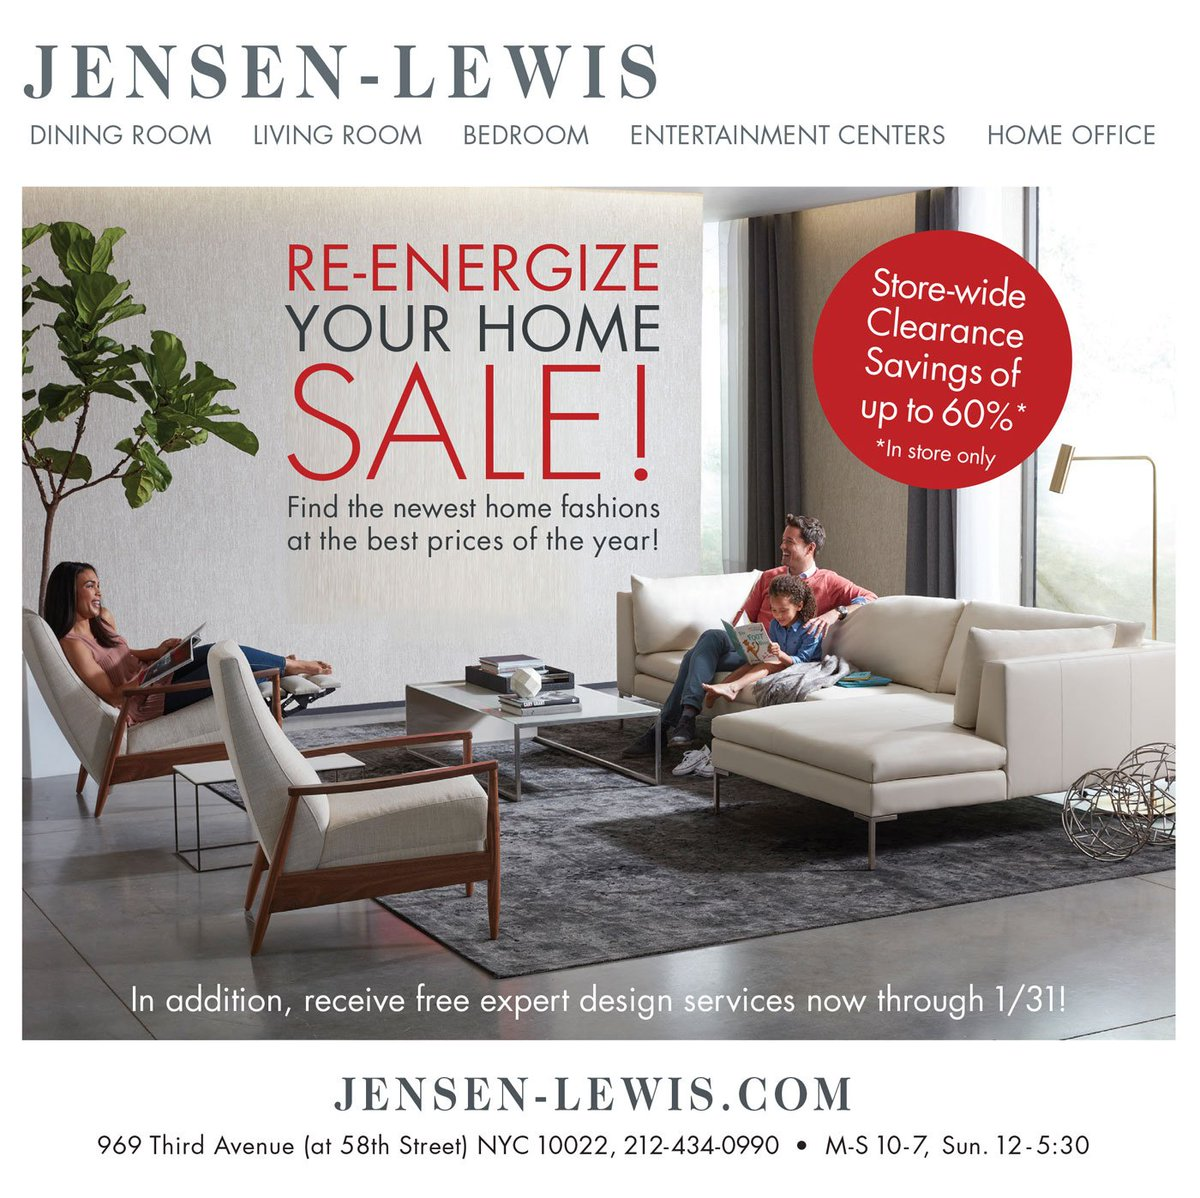 jensen lewis sleeper sofa price black leather paint furniture jensenlewis twitter prices of the year in addition receive free expert design services until 1 31 store only https www com pic swqh4lbxak